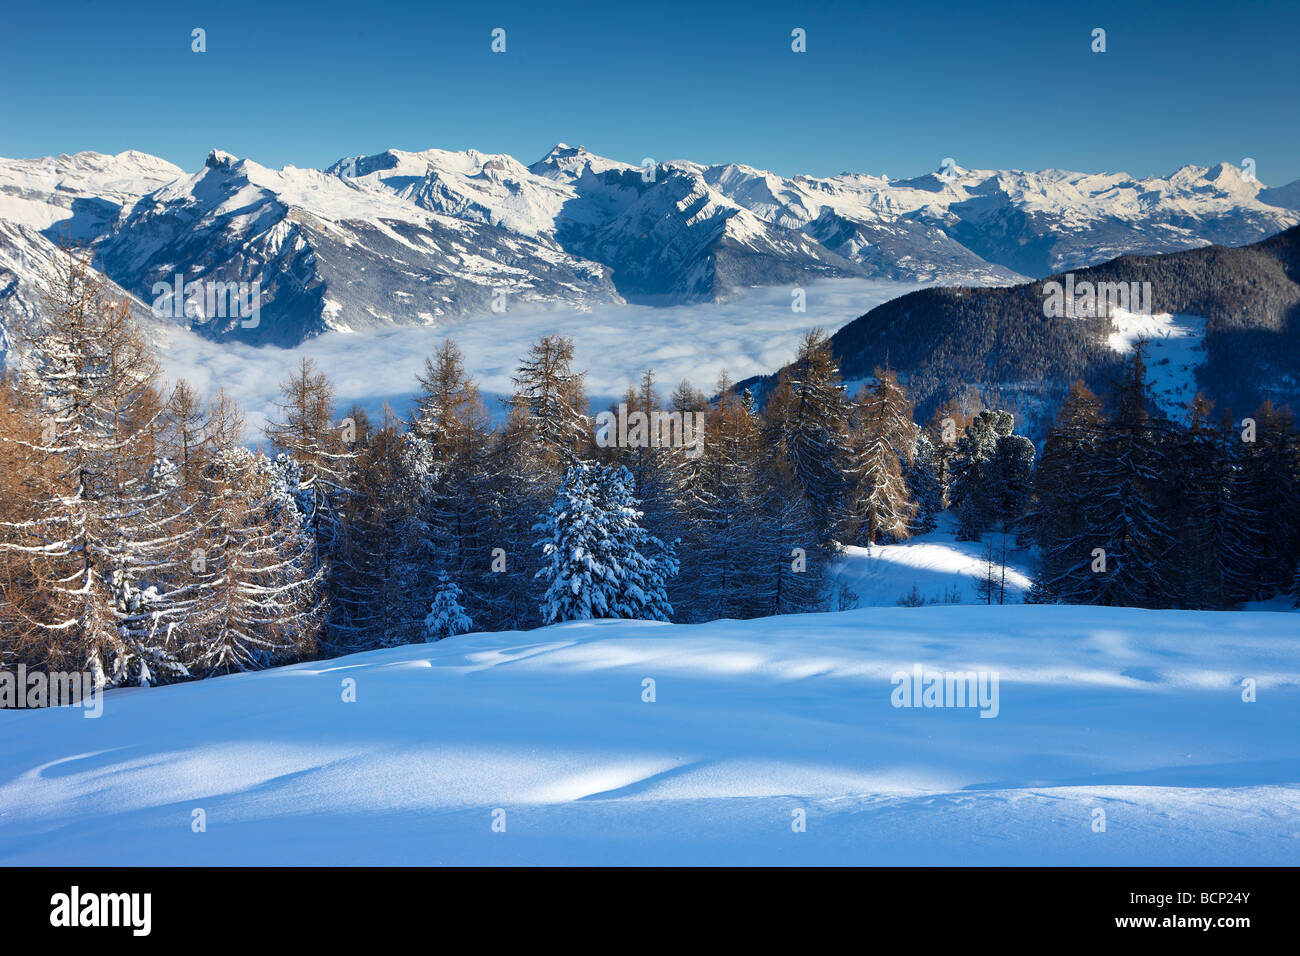 a fresh snowfalll on the slopes above the alpine village of La Tzoumas,with the Rhone Valley beyond, Valais Region, - Stock Image